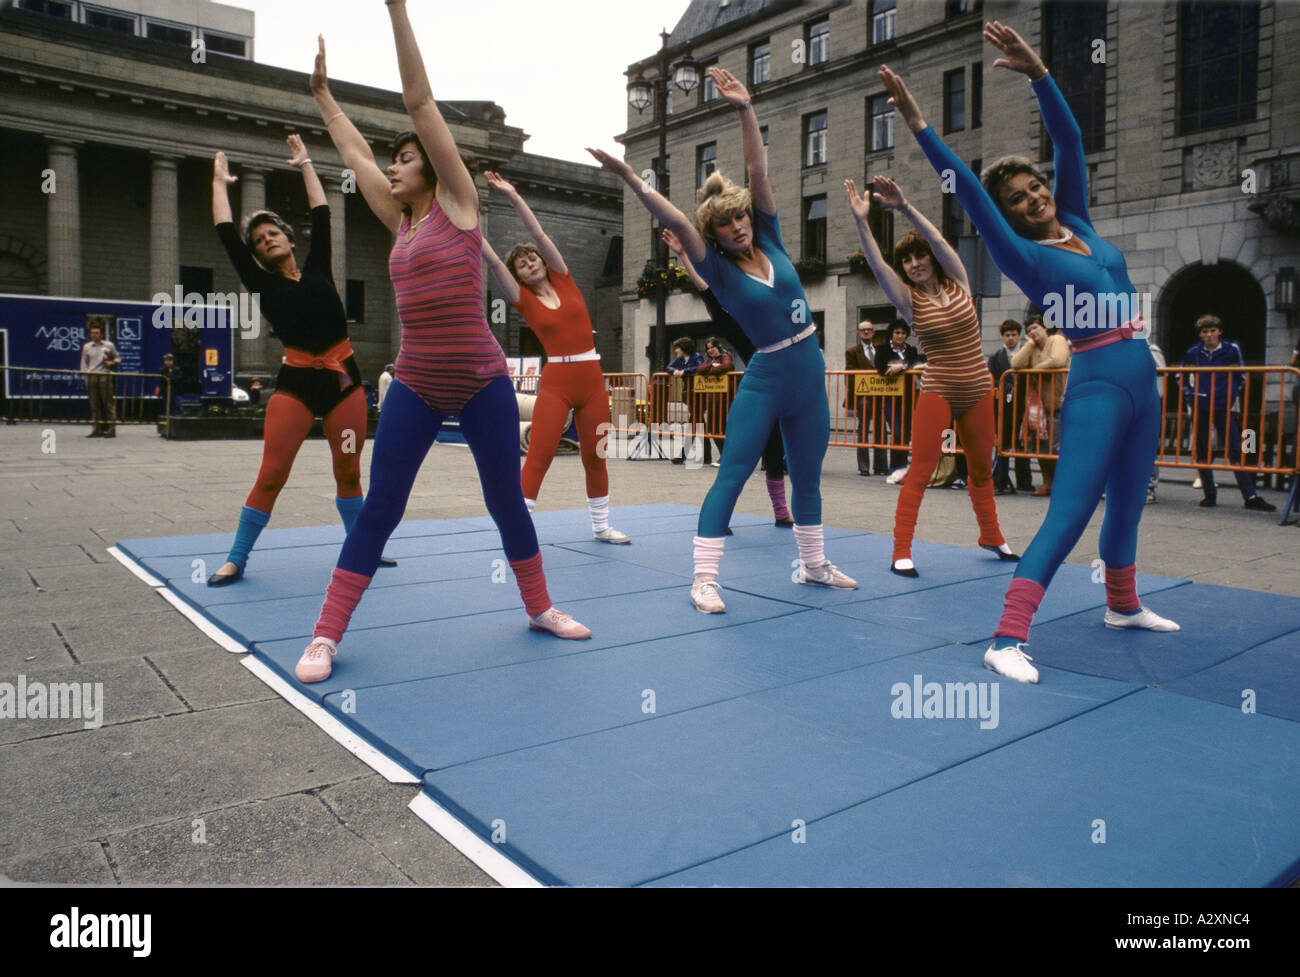 group of women doing aerobics exercise class outdoors in city square 1983 Stock Photo